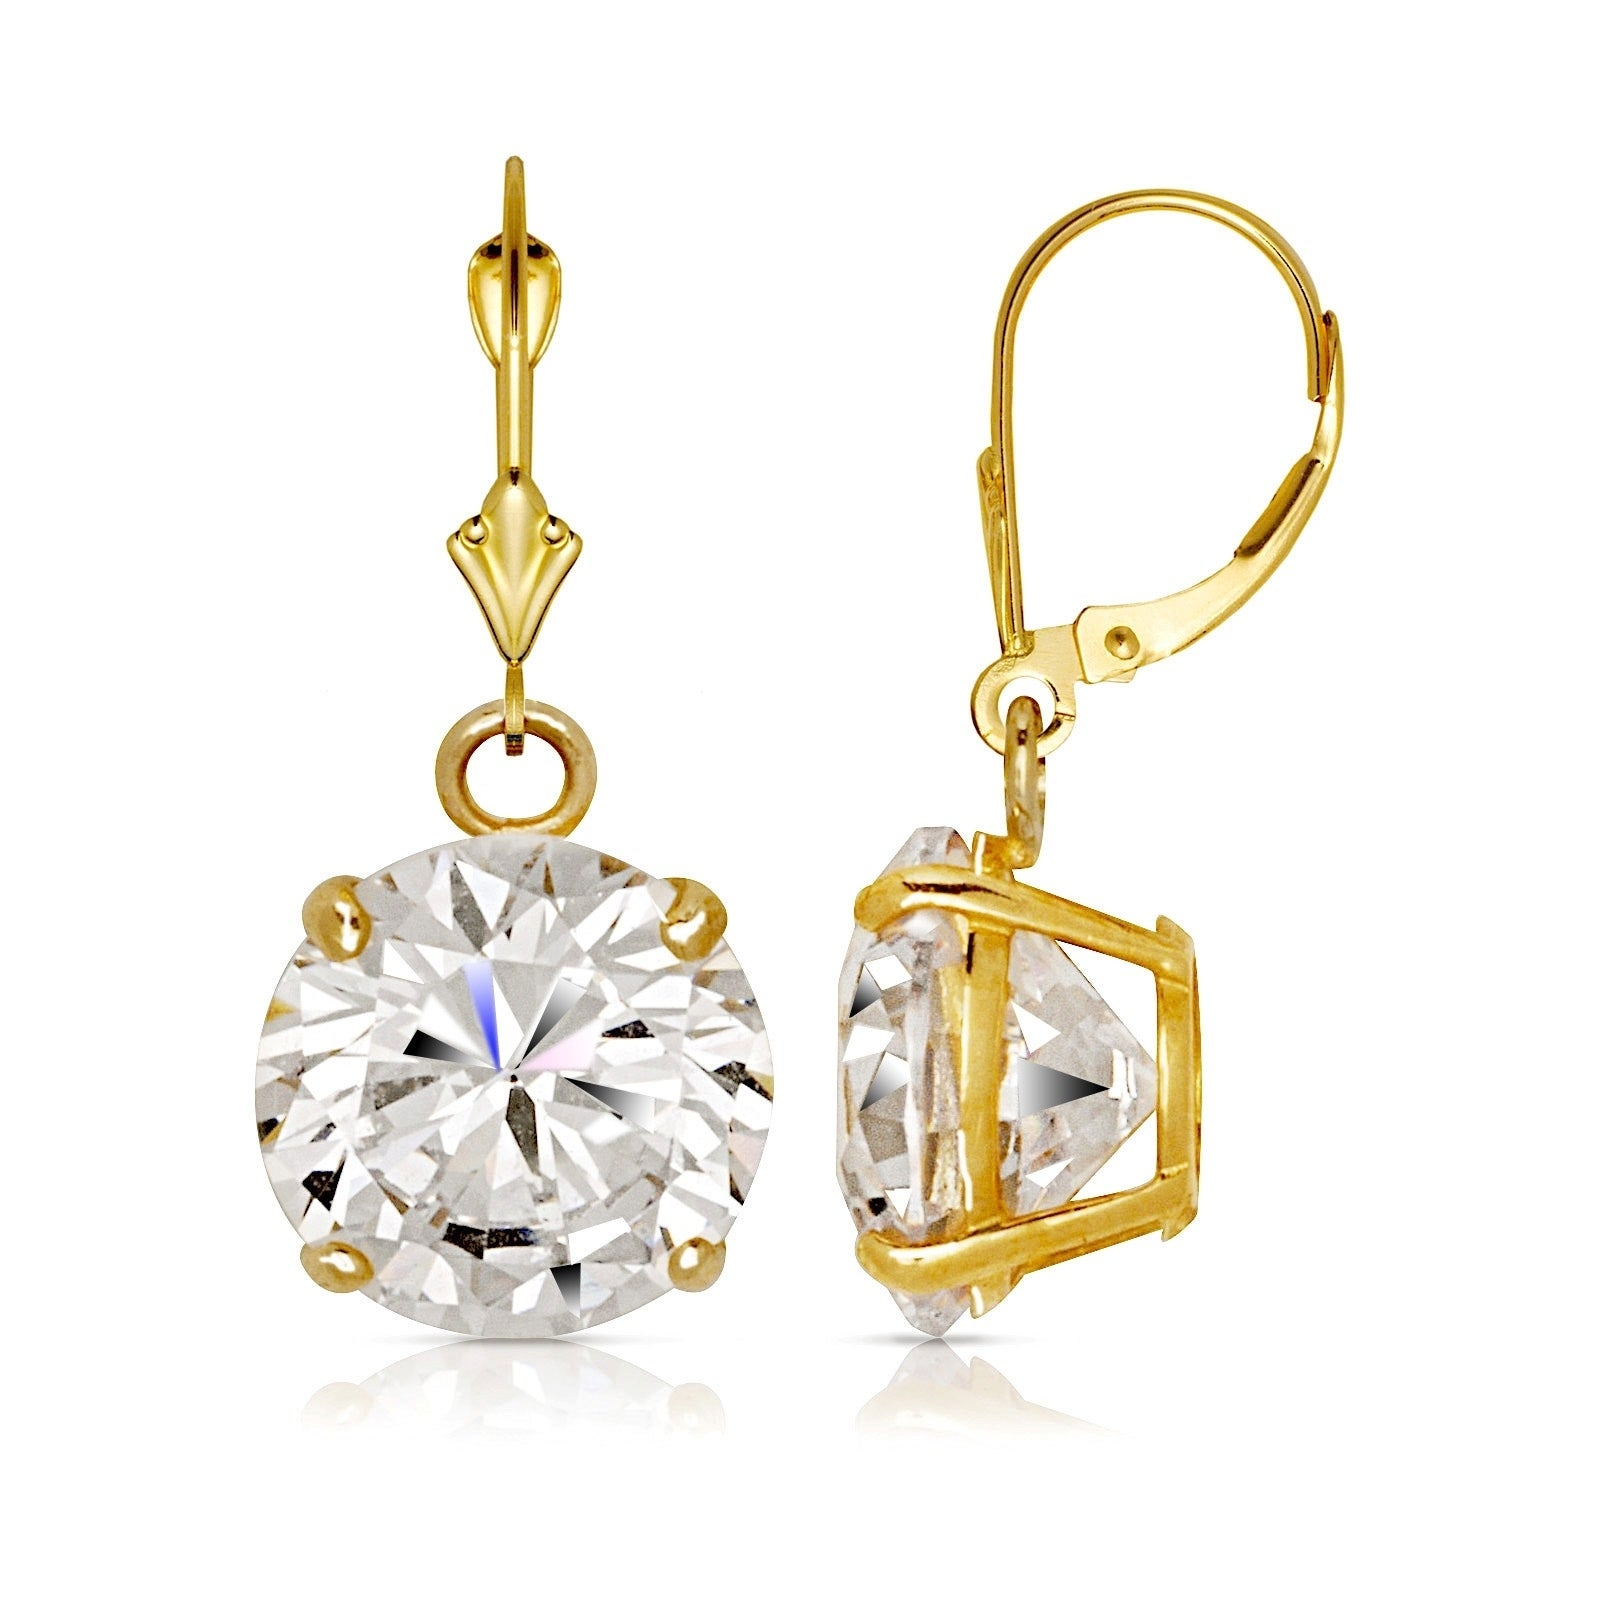 14K SOLID WHITE GOLD 6MM ROUND CZ DROP DANGLE LEVER BACK EARRINGS